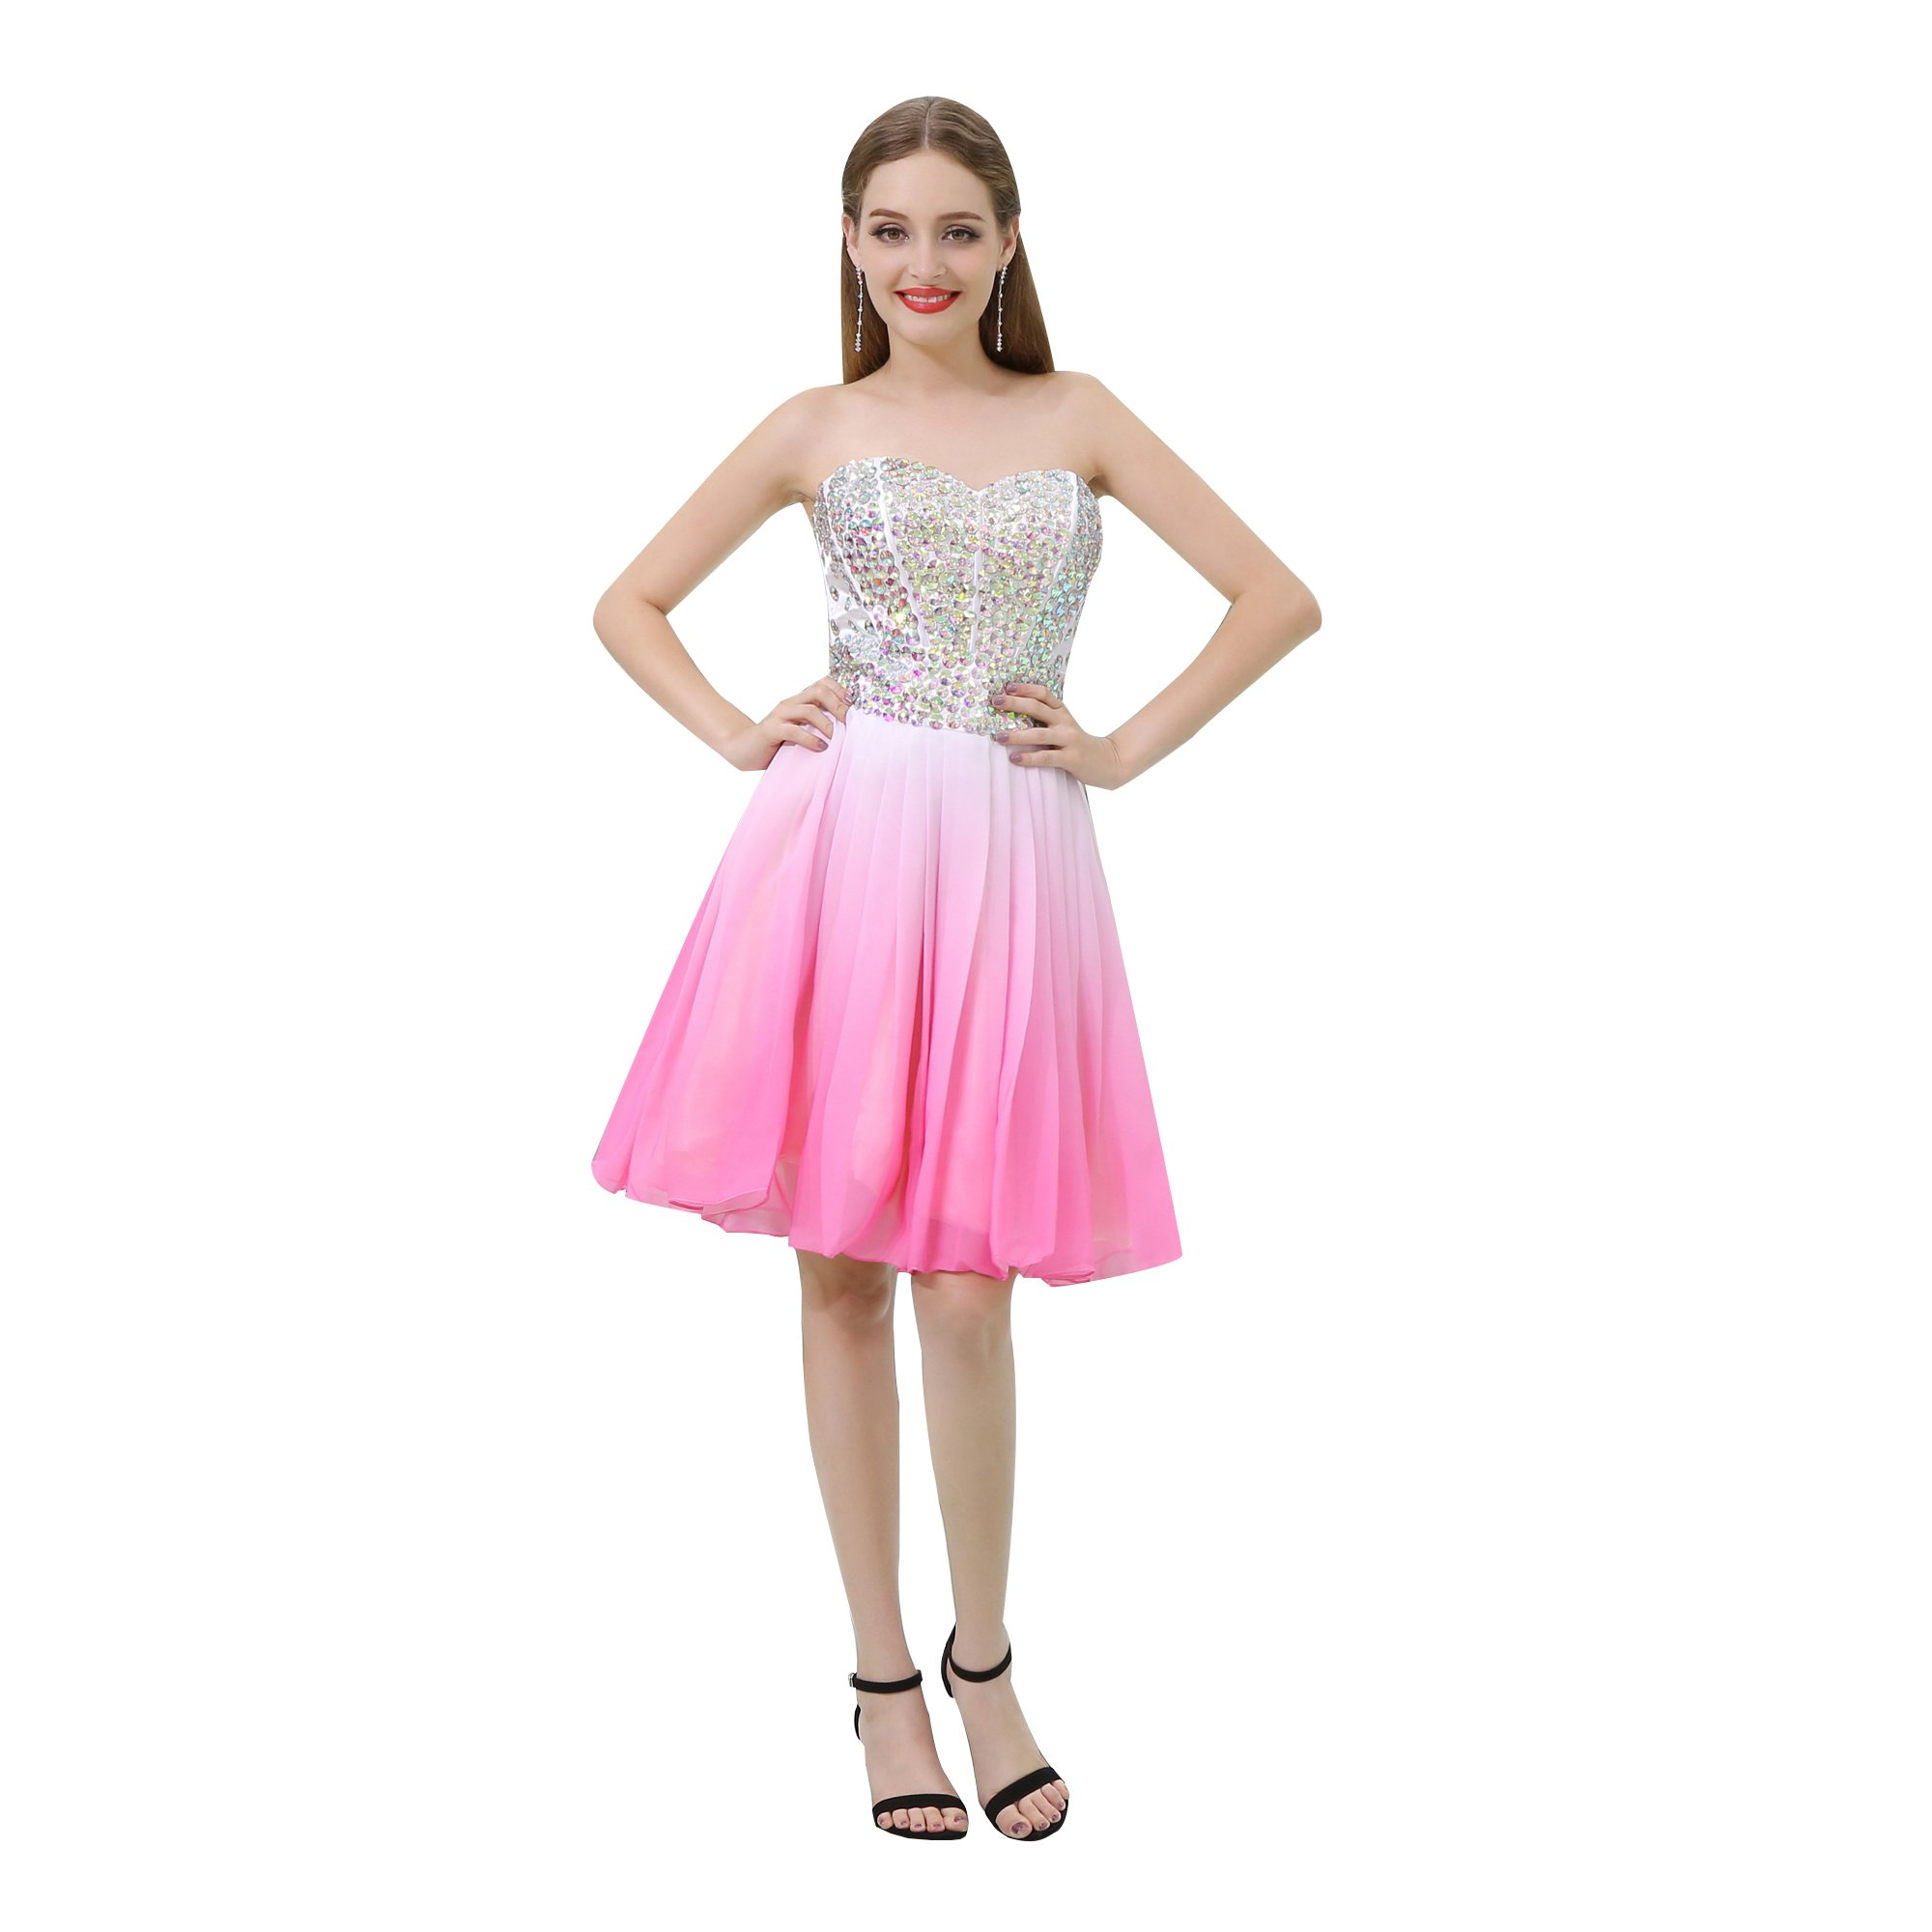 Blevla Strapless Beading Bodice Gradient Chiffon Short Prom Gown Homecoming Dresses Pink US 8